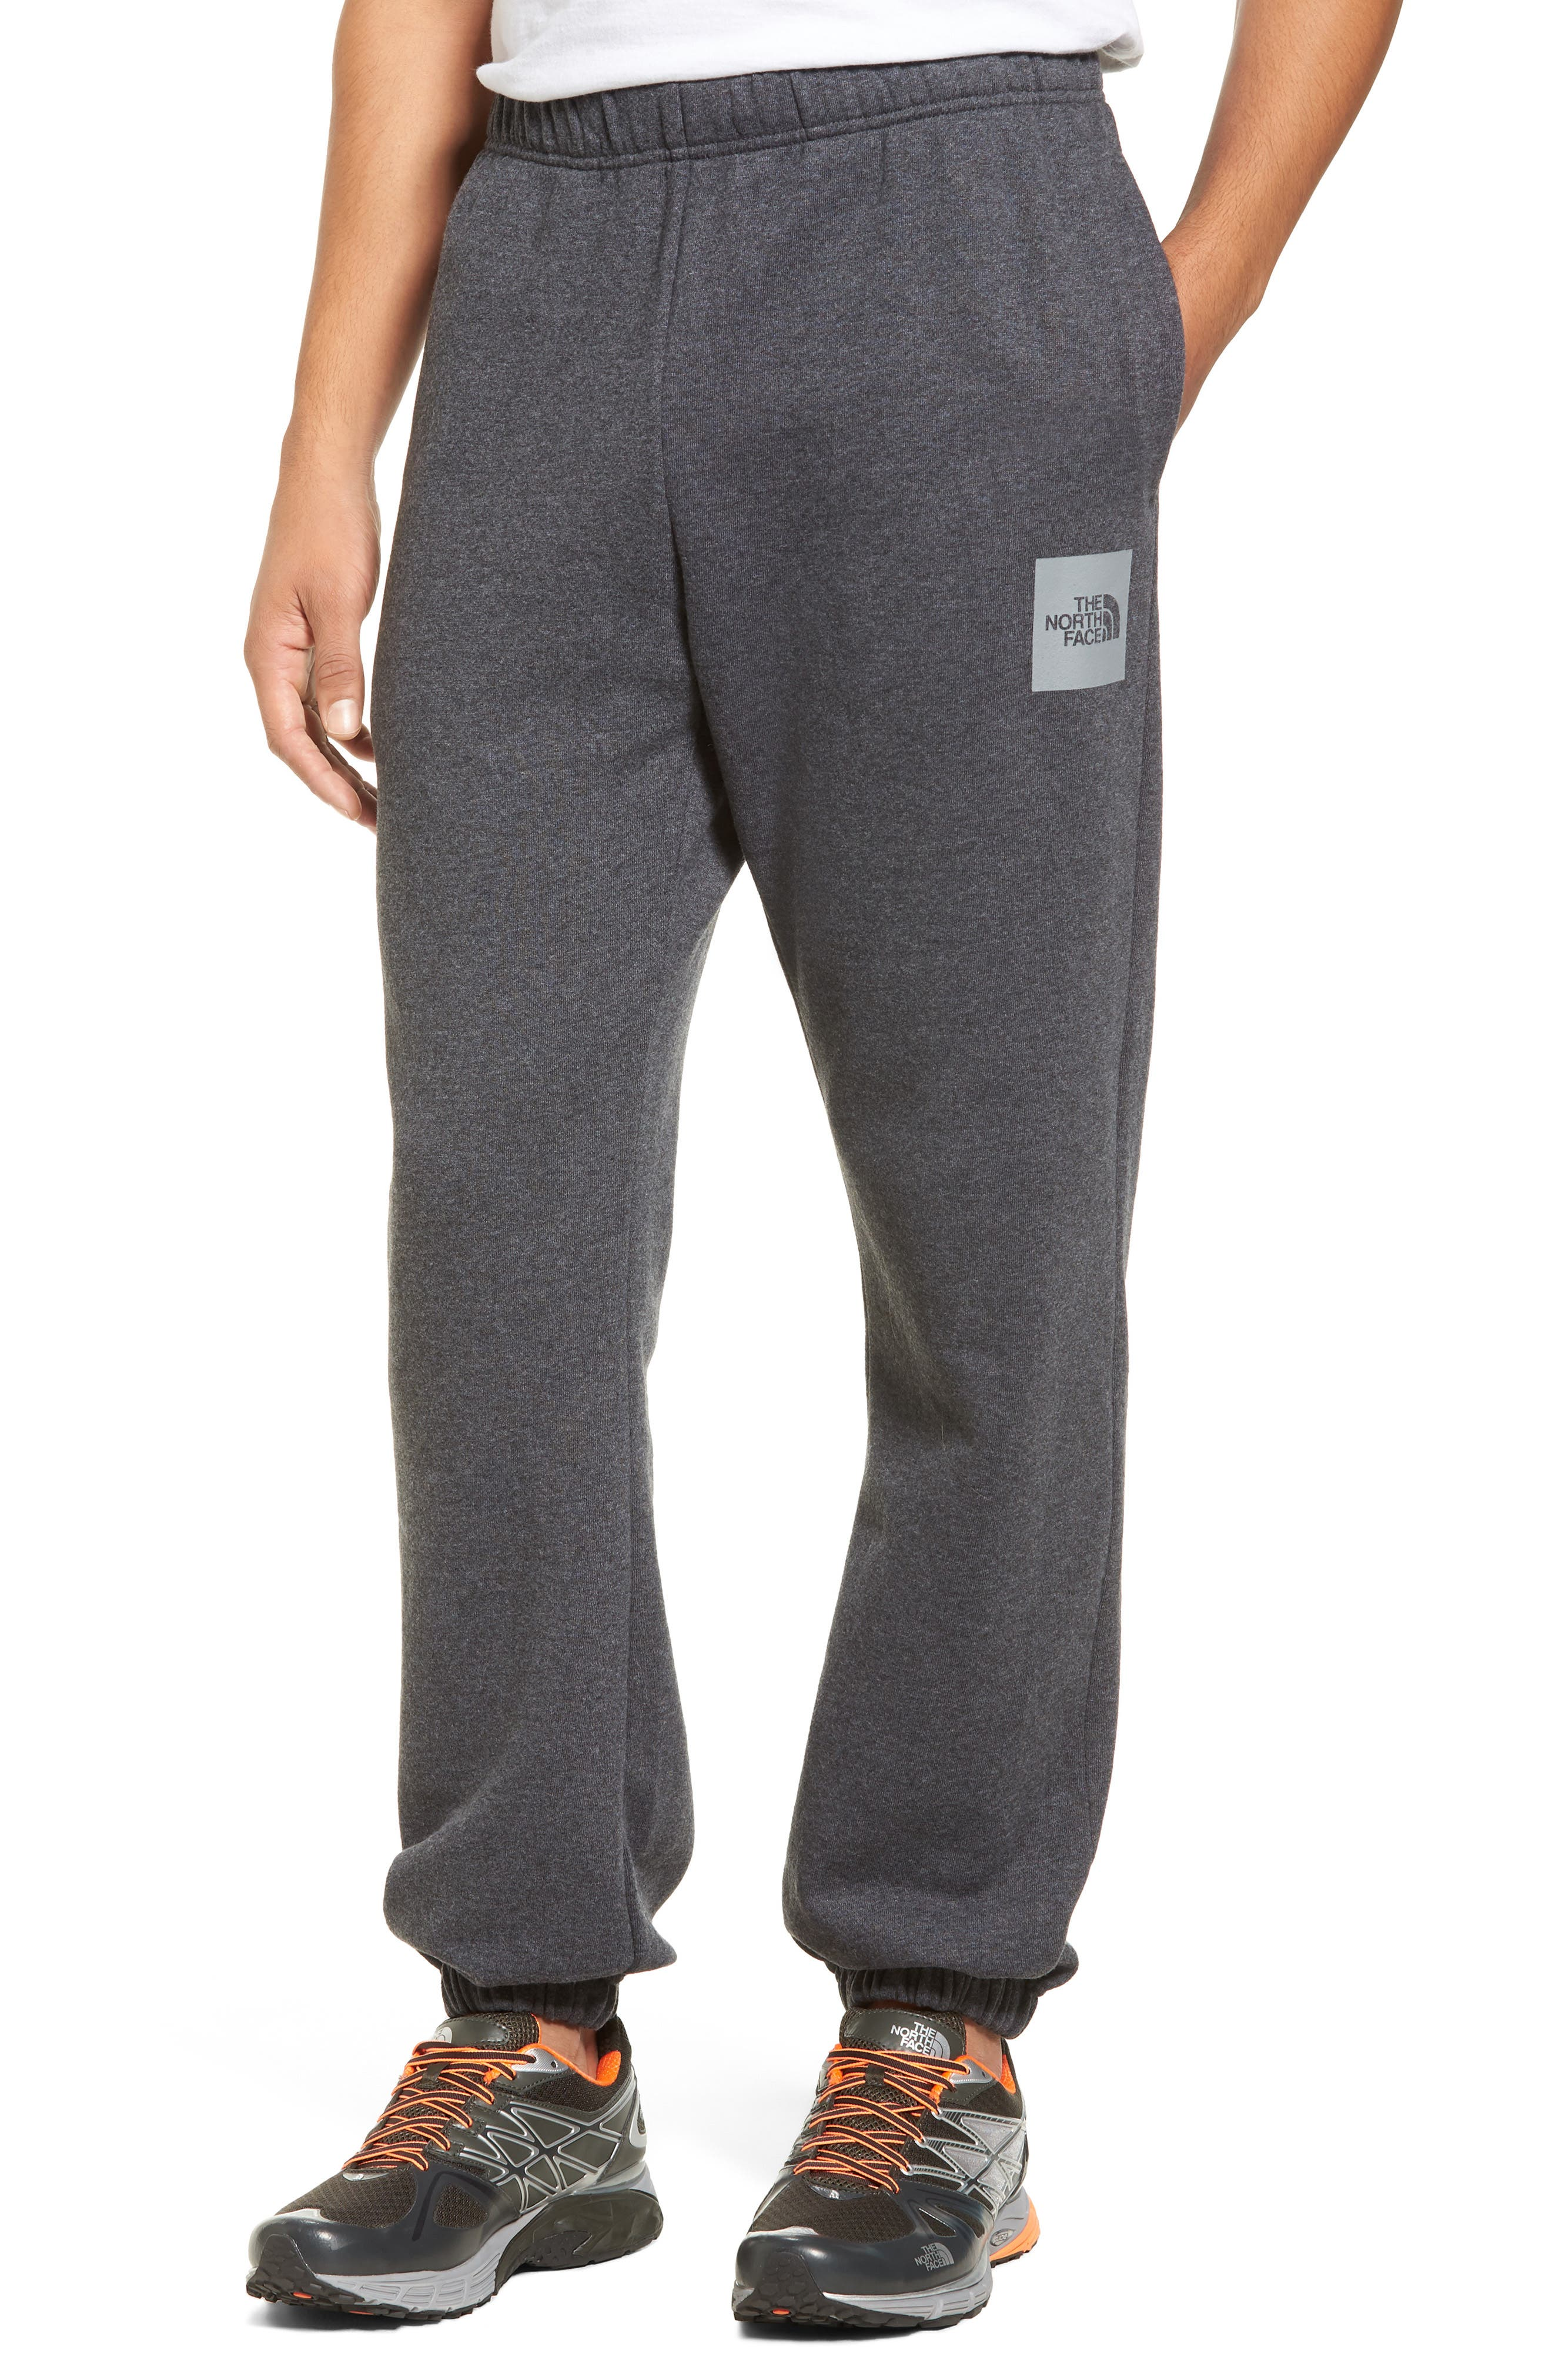 Reflective Never Stop Pants,                         Main,                         color, Dark Grey Hthr/Monument Grey